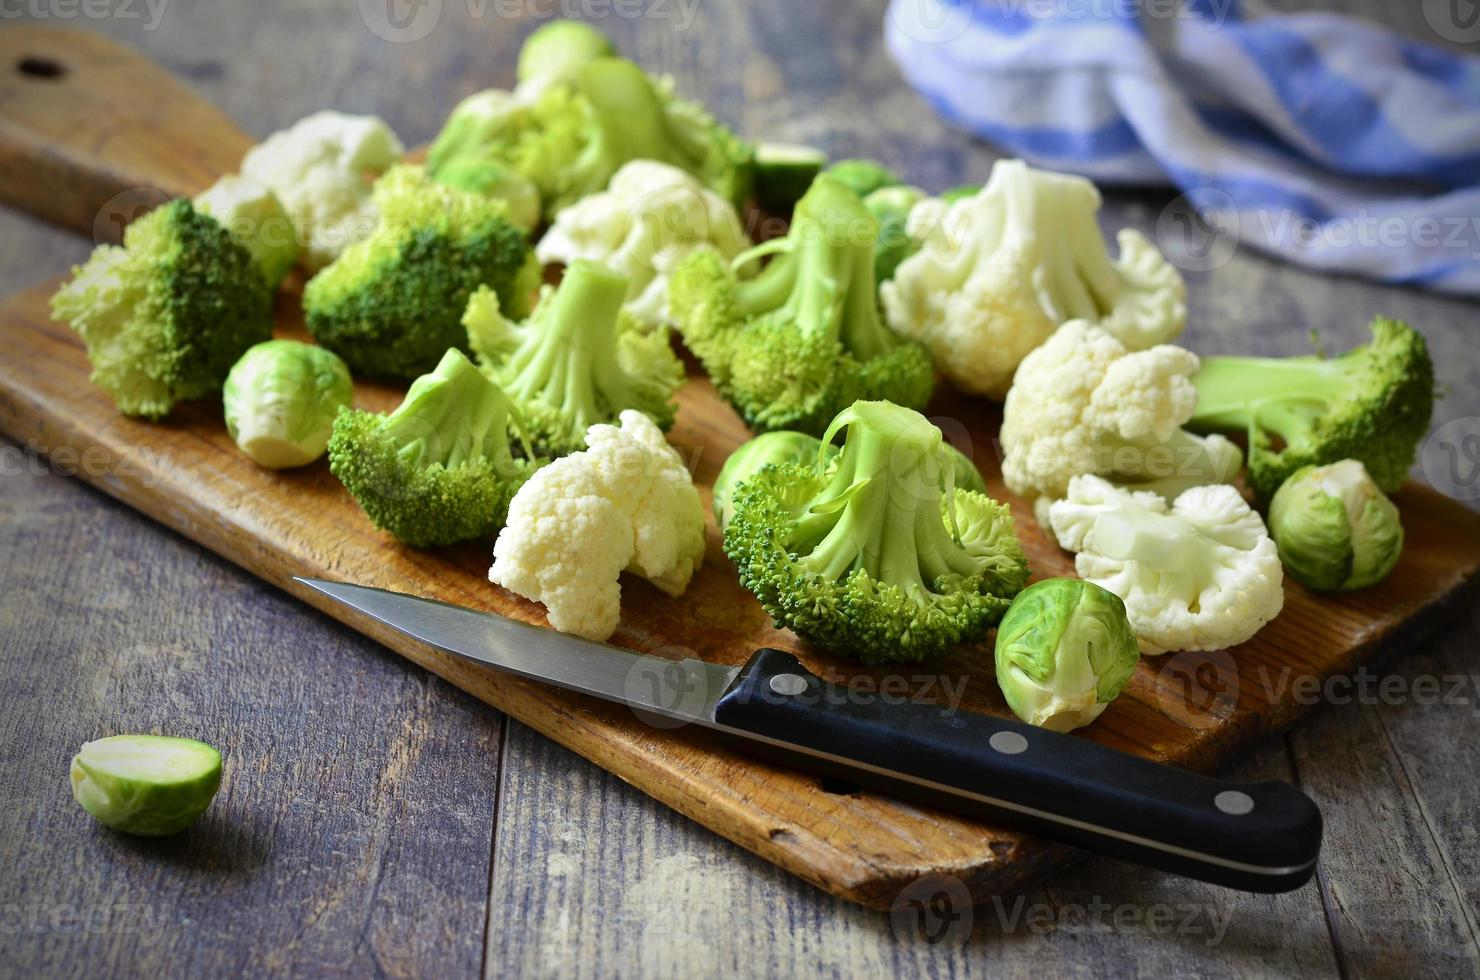 Brussels sprout,broccoli and cauliflower. photo